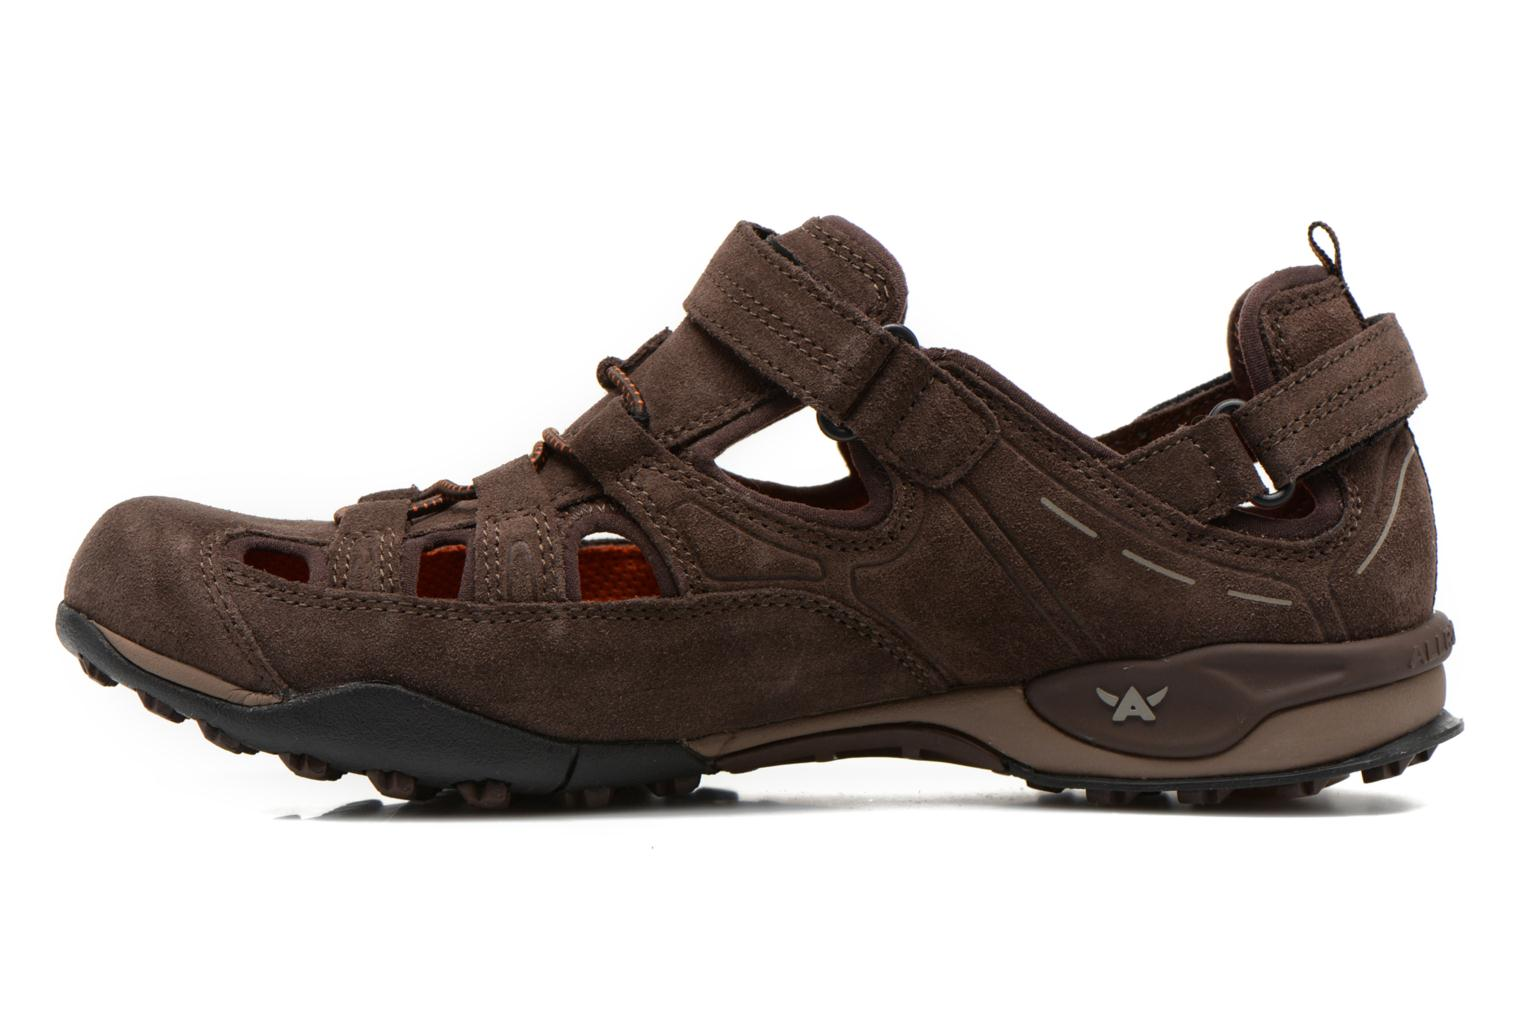 Chaussures de sport Allrounder by Mephisto tarantino Marron vue face